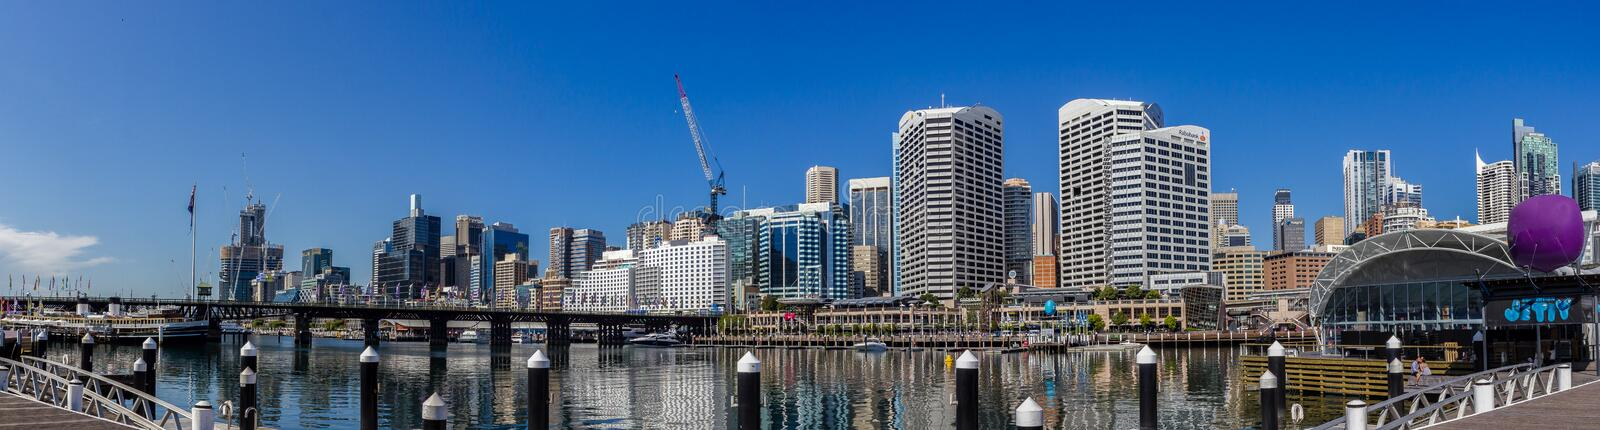 Panorama von Darling Harbour, New South Wales stockfoto